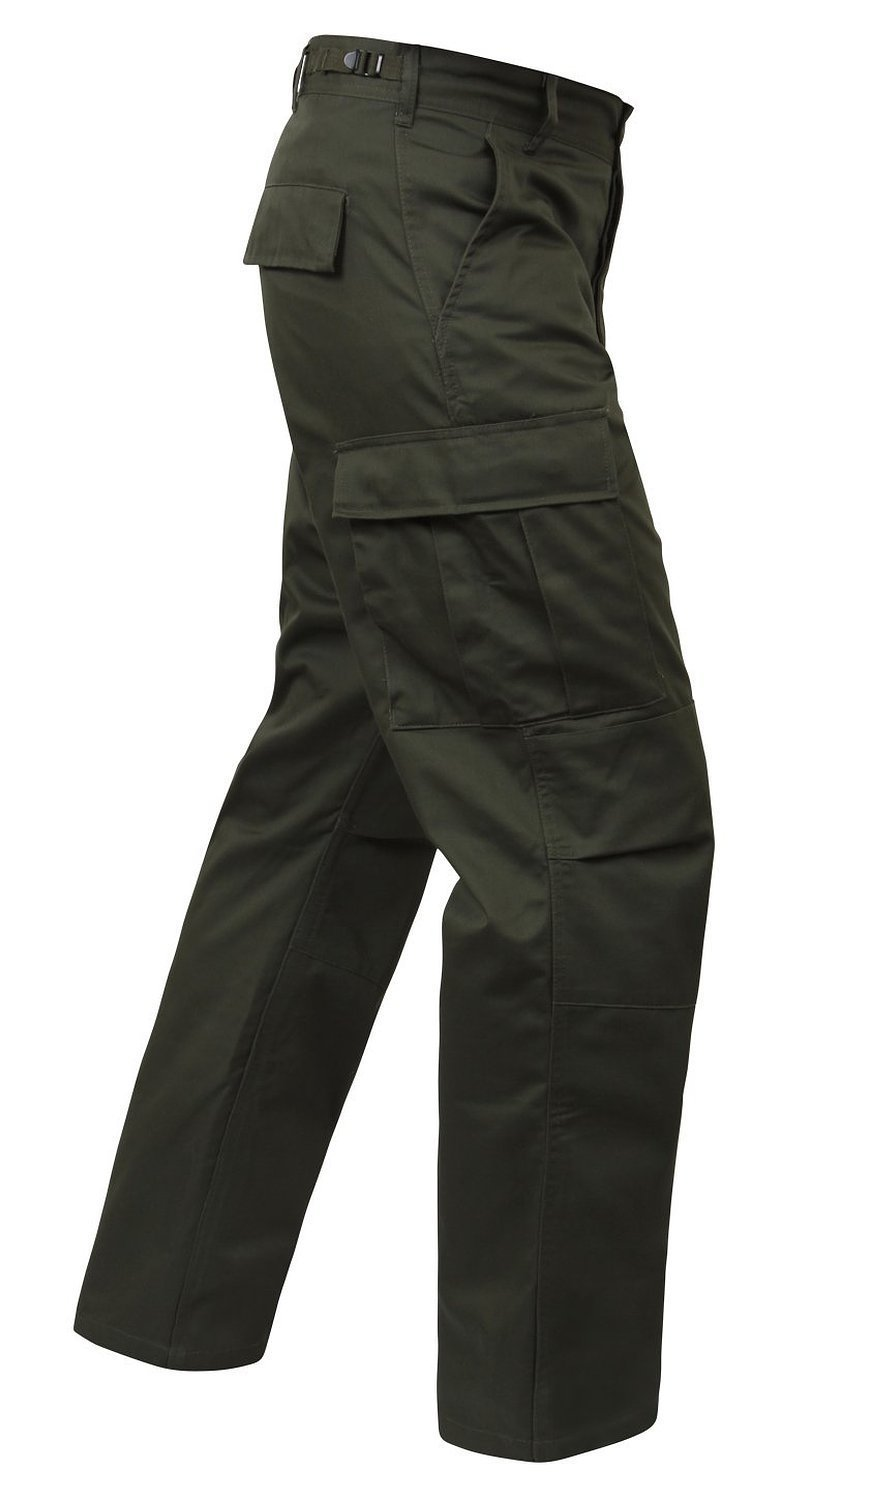 Rothco Olive Drab BDU Pants RSR Group Inc B06XX6S4FN